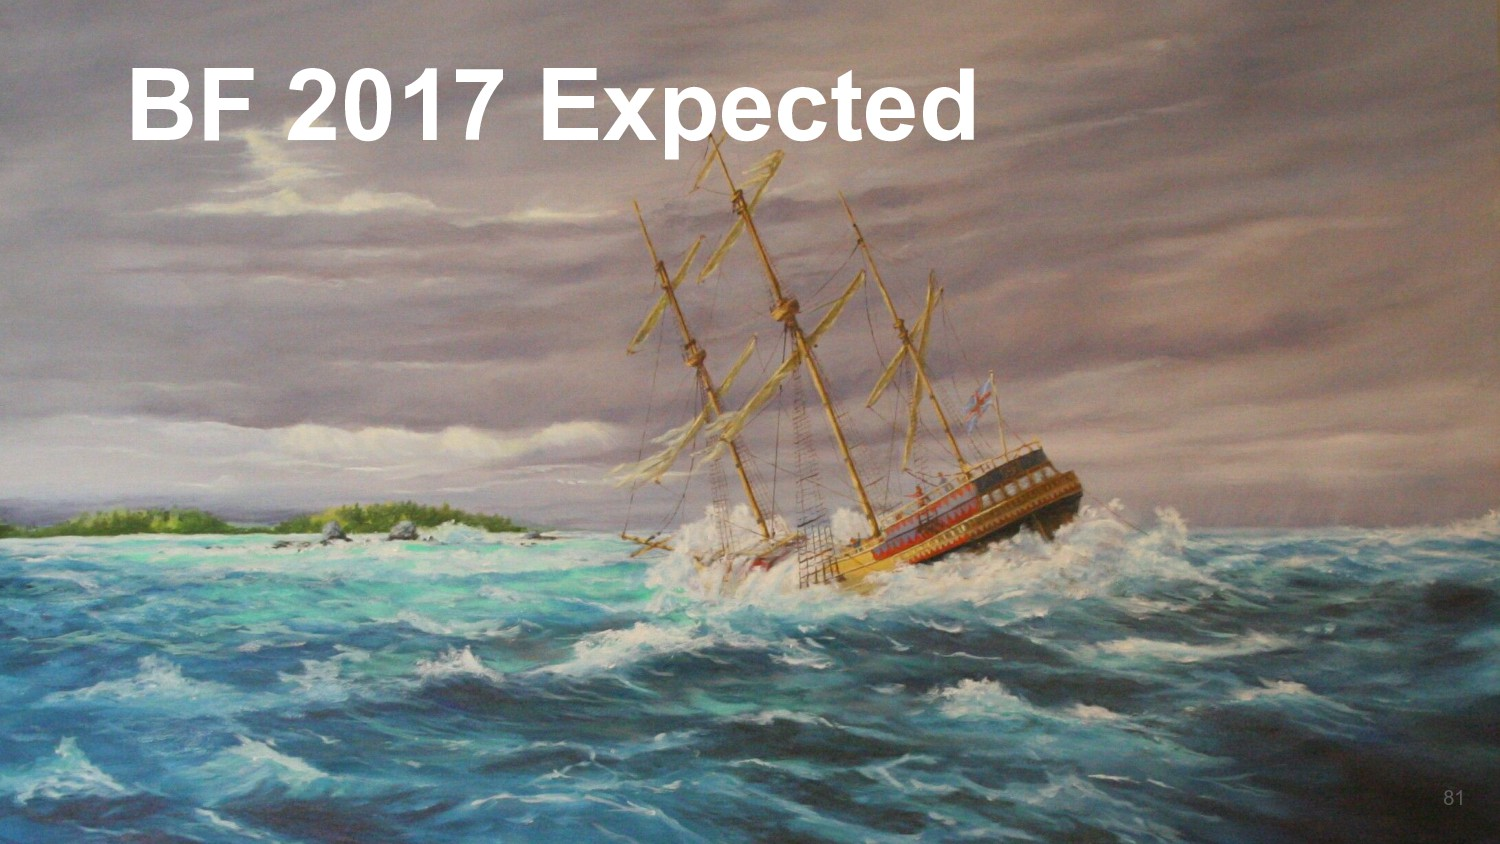 BF 2017 Expected 81